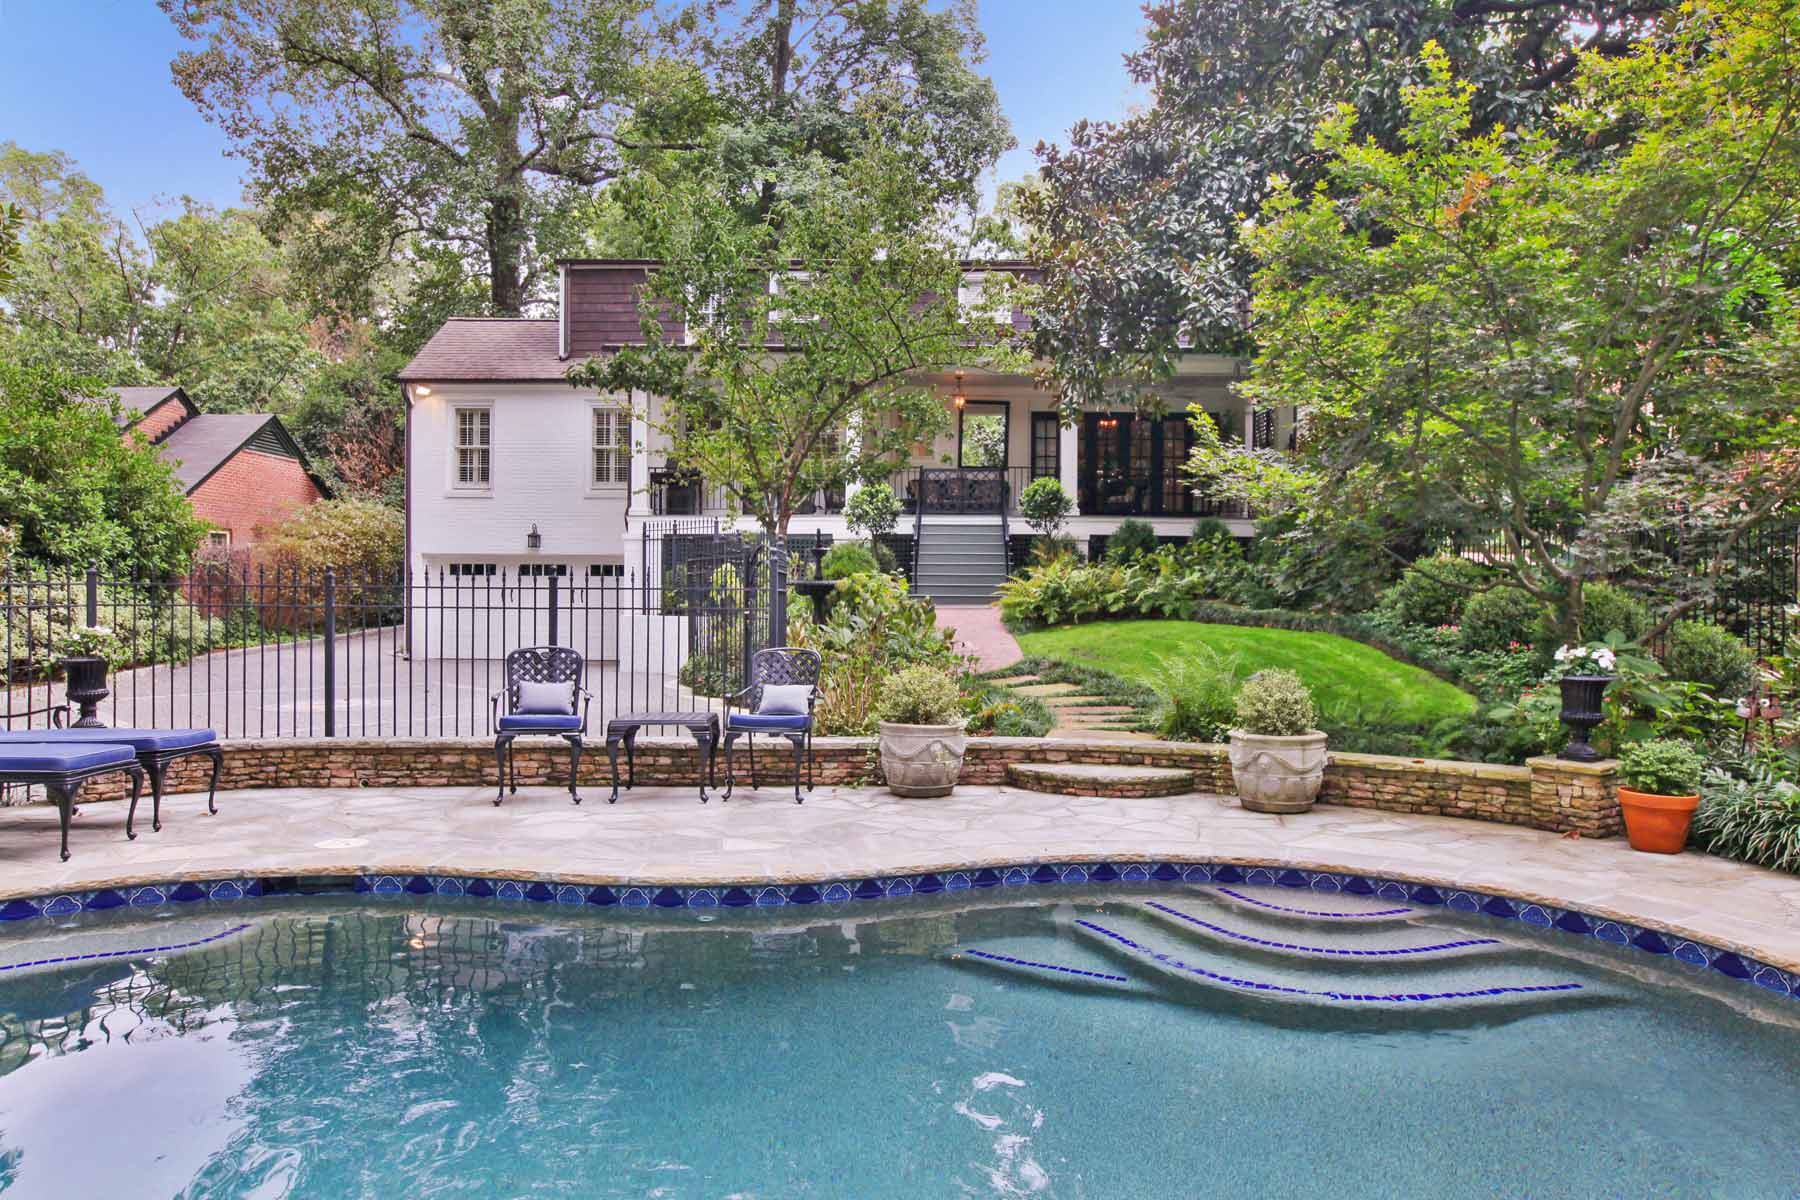 Property For Sale at Impossibly charming & impeccably maintained Ansley Park showstopper!